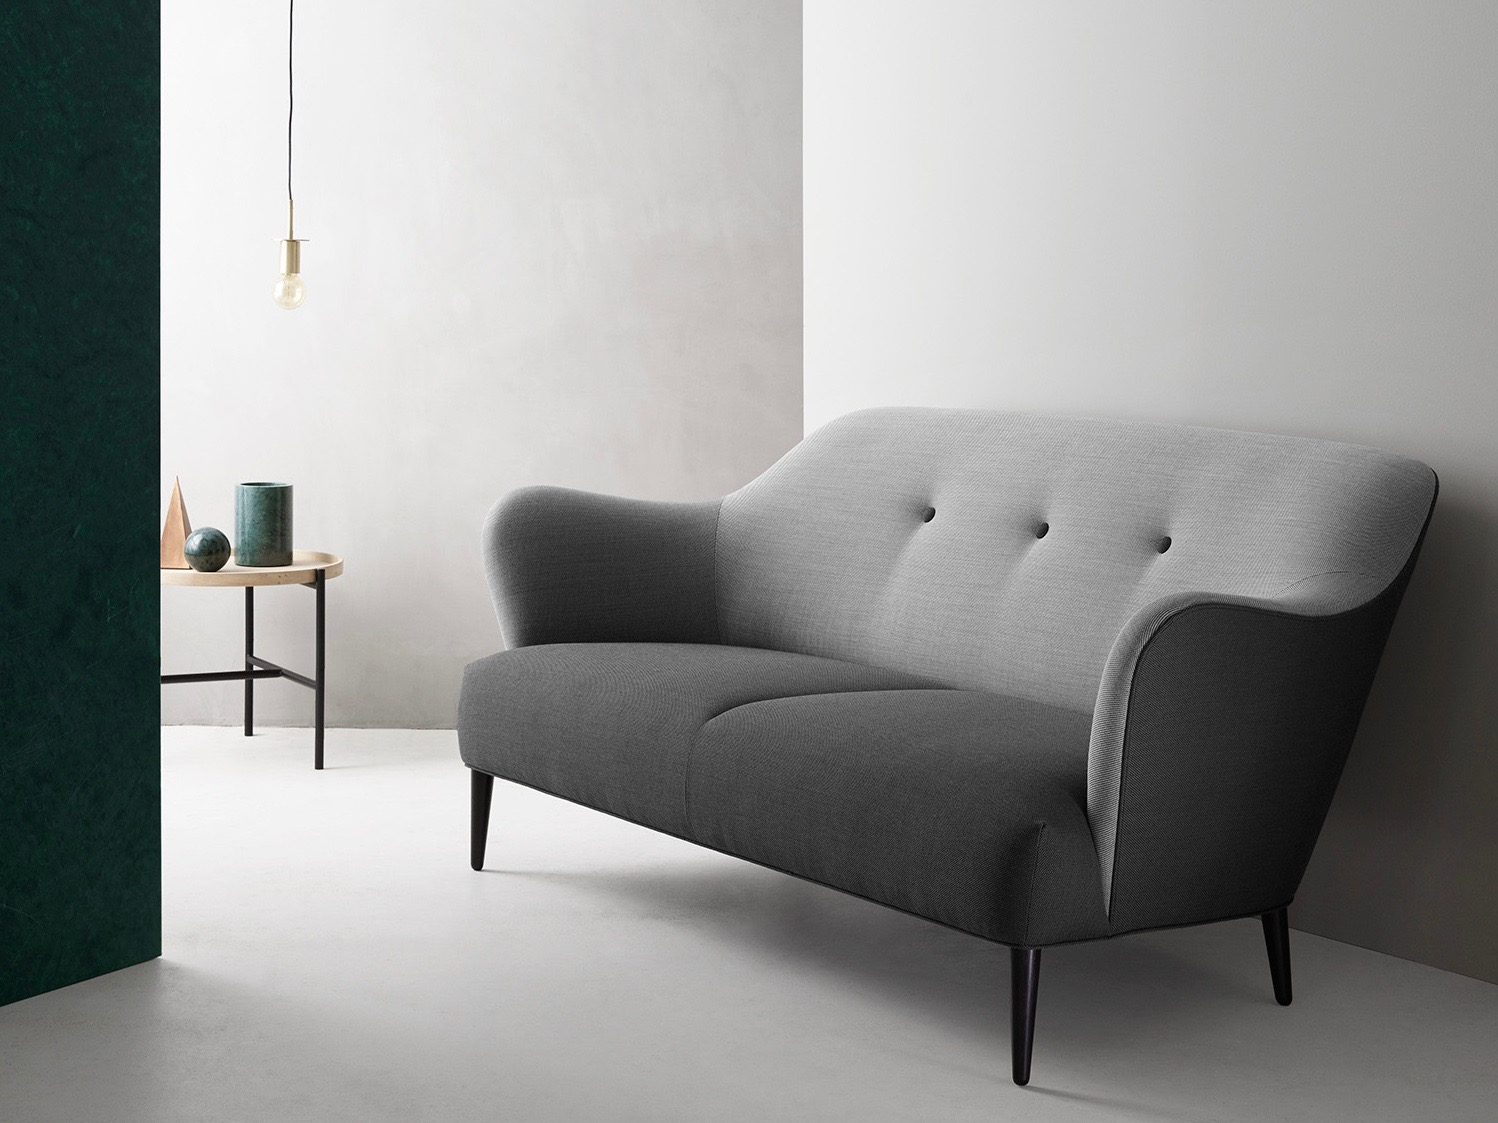 The 'Retro' sofa by 365º North for Won Design. Tightly fitted upholstery in a smooth swooping form.  The brand's 'Cross' side table (also by 365º North) is in the background.